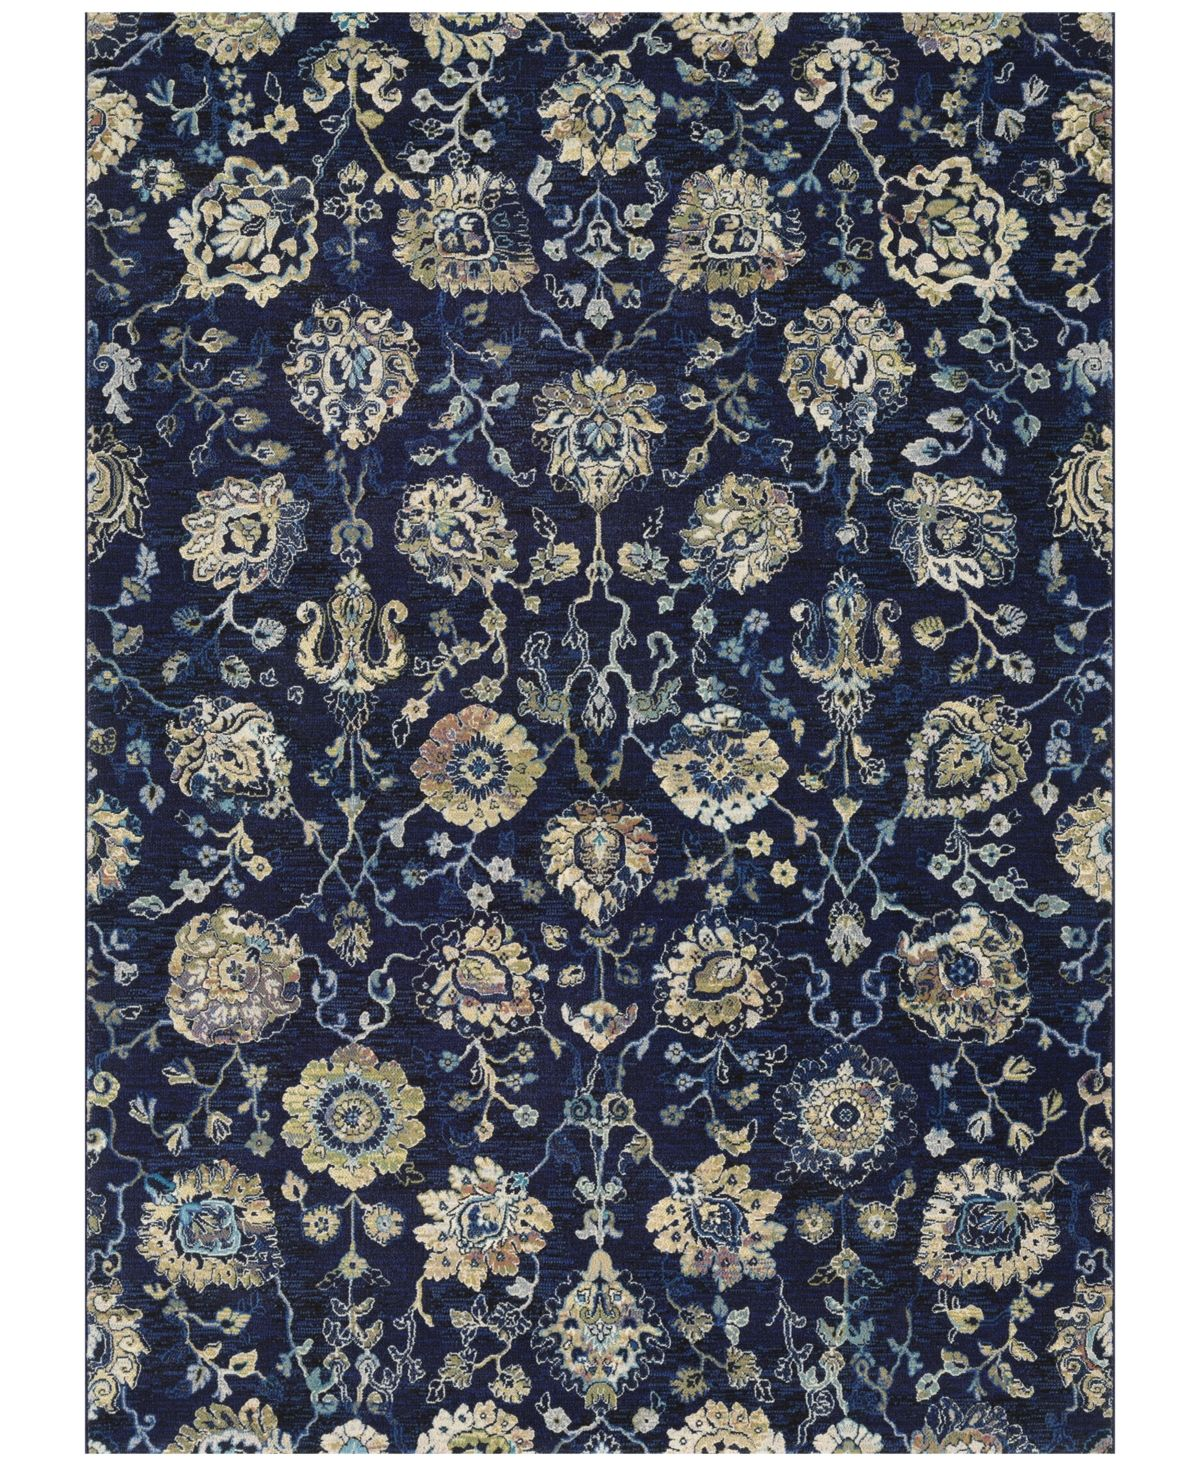 Couristan Taylor Adaline Navy Cream 2 7 X 7 10 Runner Rug Reviews Rugs Macy S Area Rugs Where To Buy Carpet Rugs